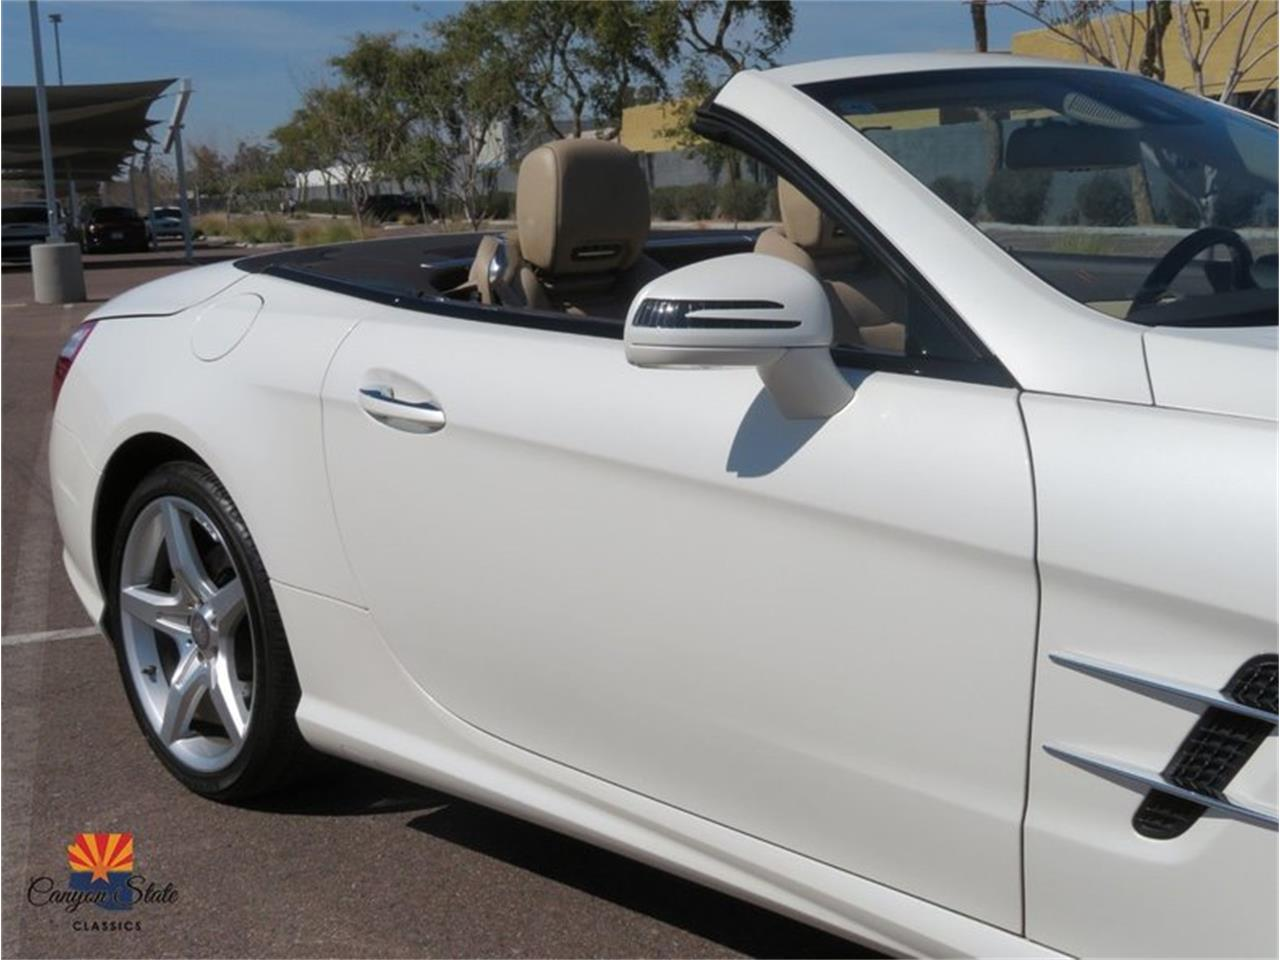 2013 Mercedes-Benz SL-Class for sale in Tempe, AZ – photo 55